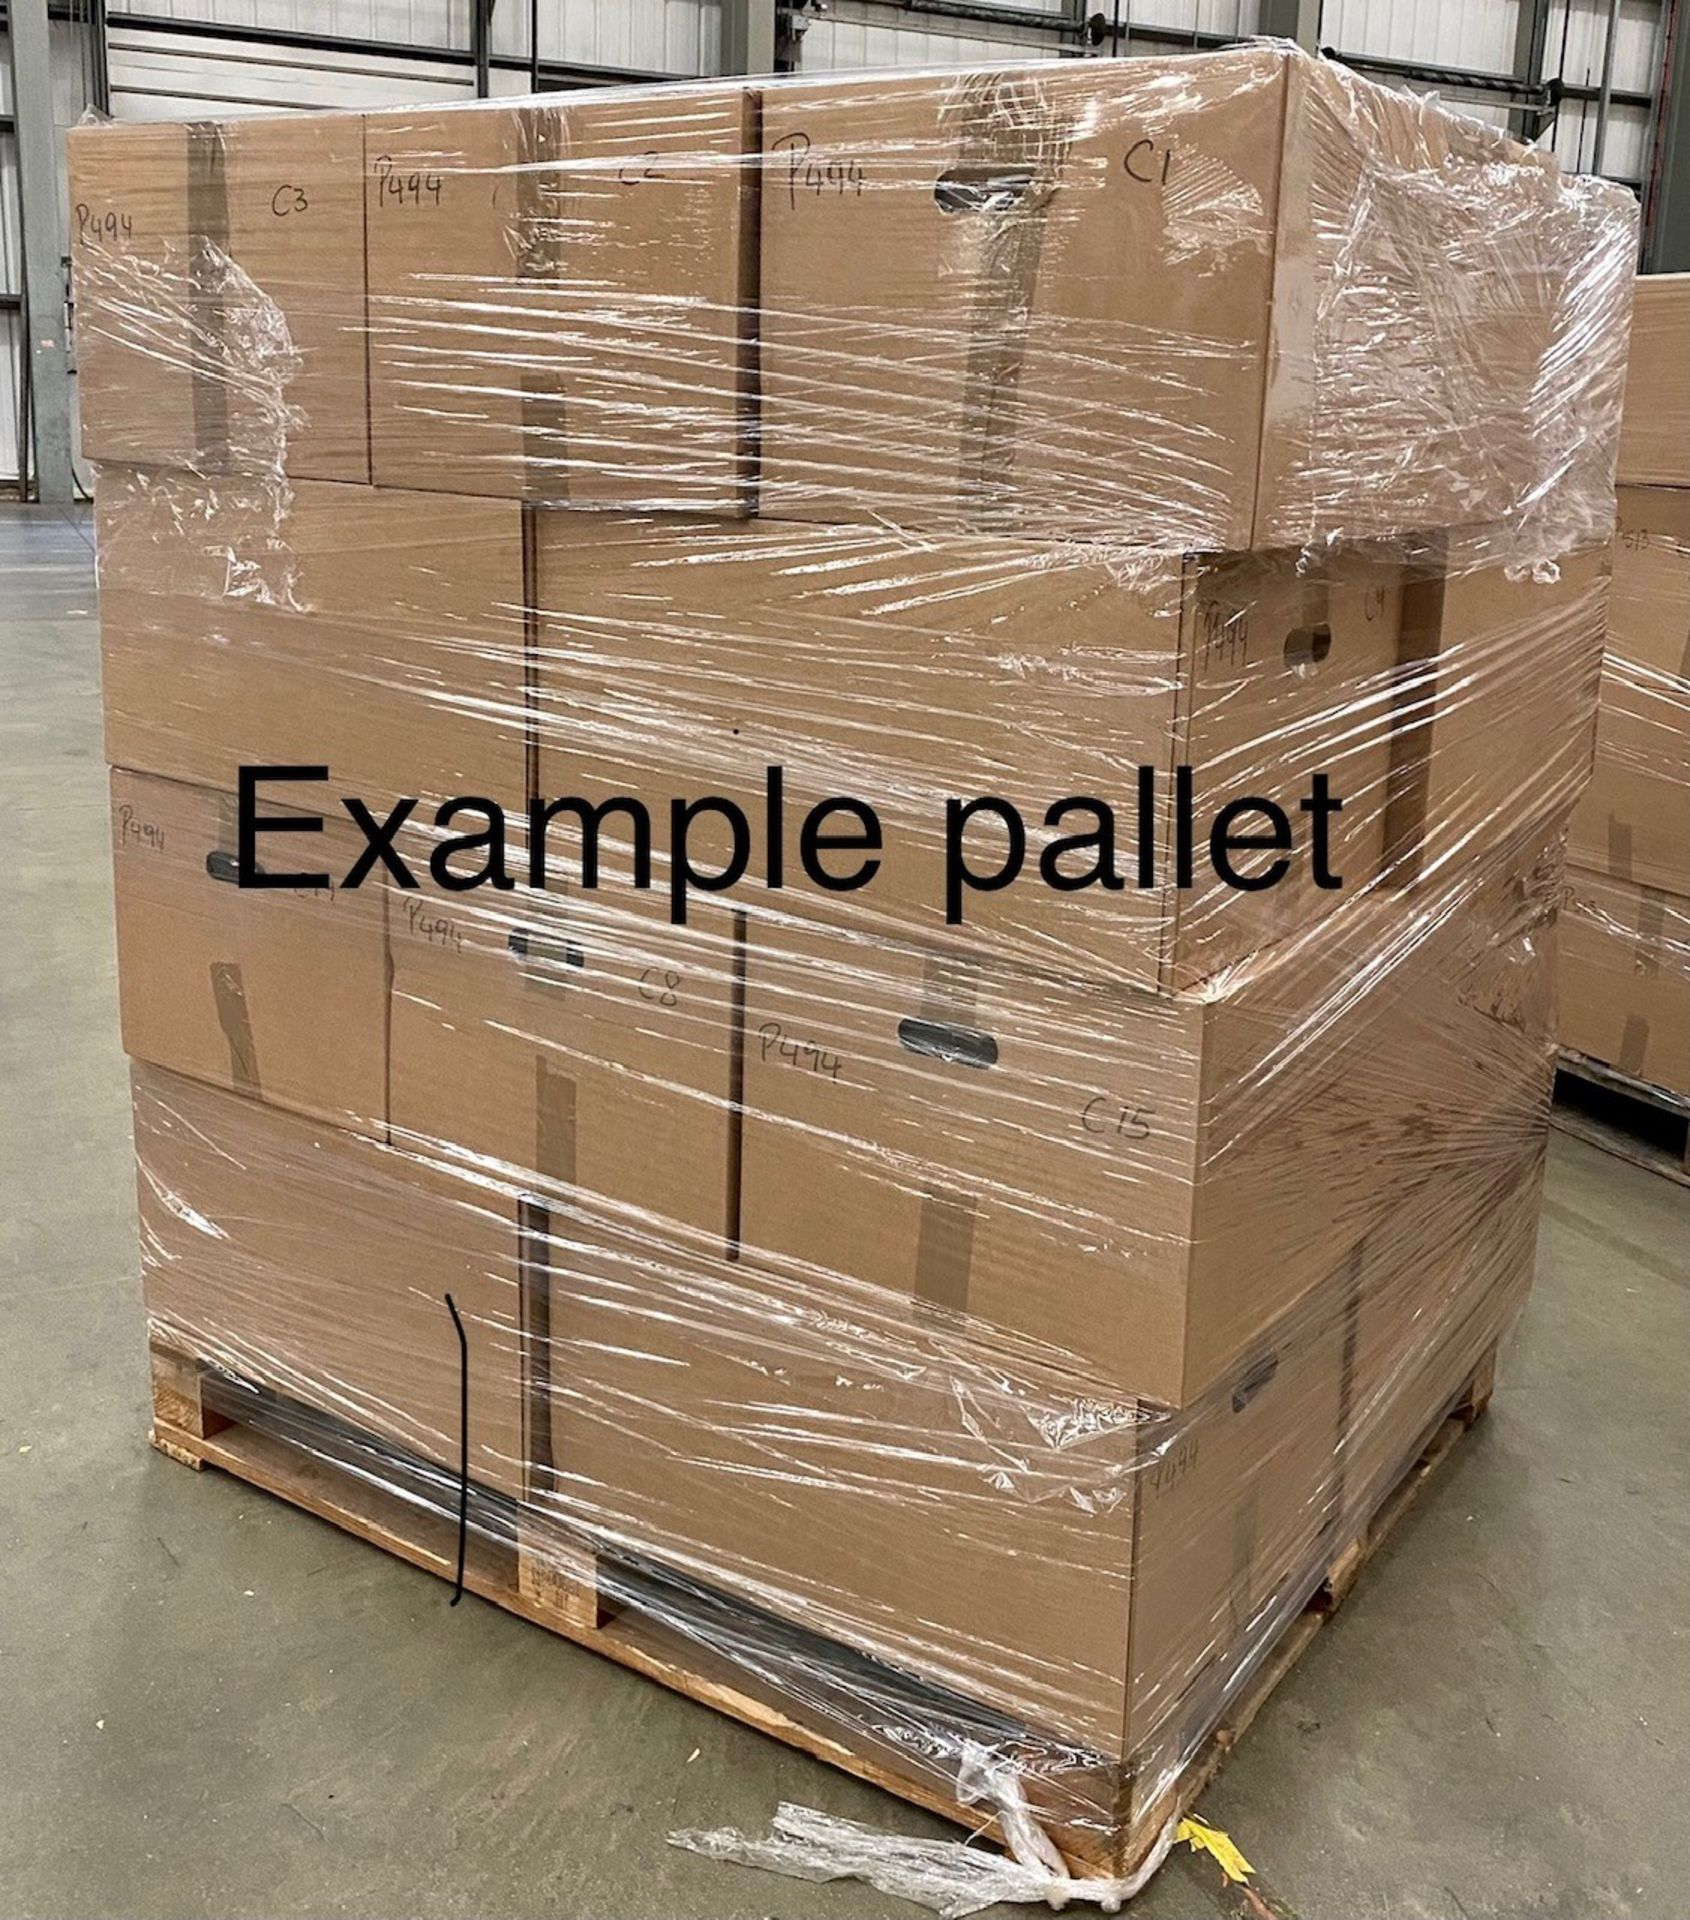 1 x mixed pallet = 229 items of Grade A M&S Womenswear. Approx Total RRP £5235.50 - Image 8 of 9